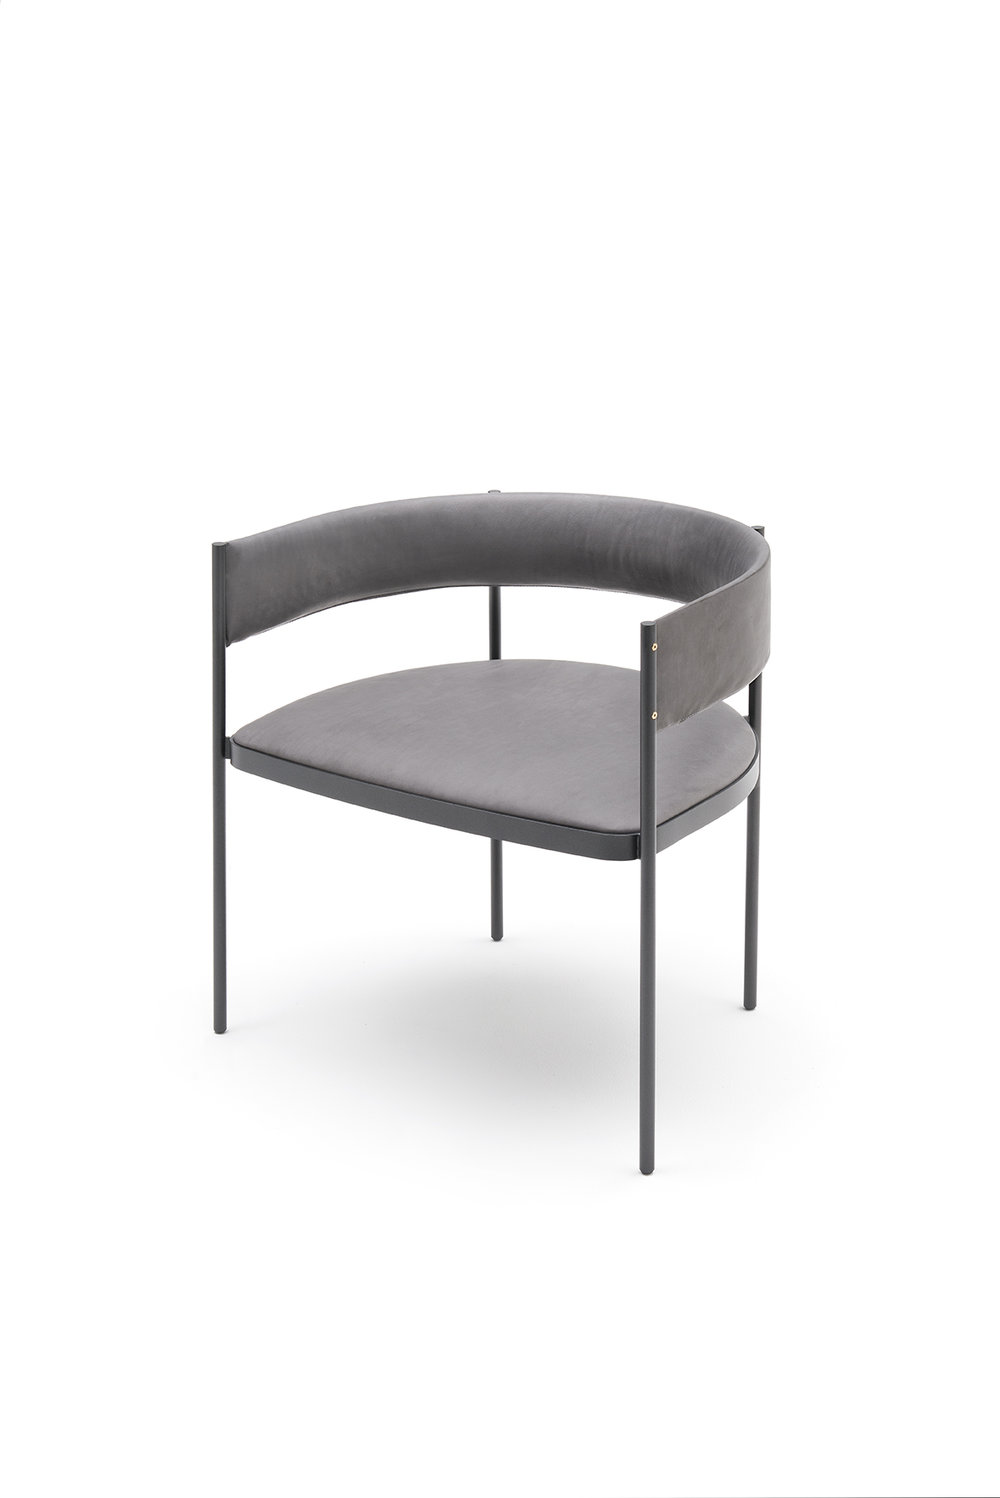 The 'Era' easychair by David Lopez Quincoces for Living Divani.